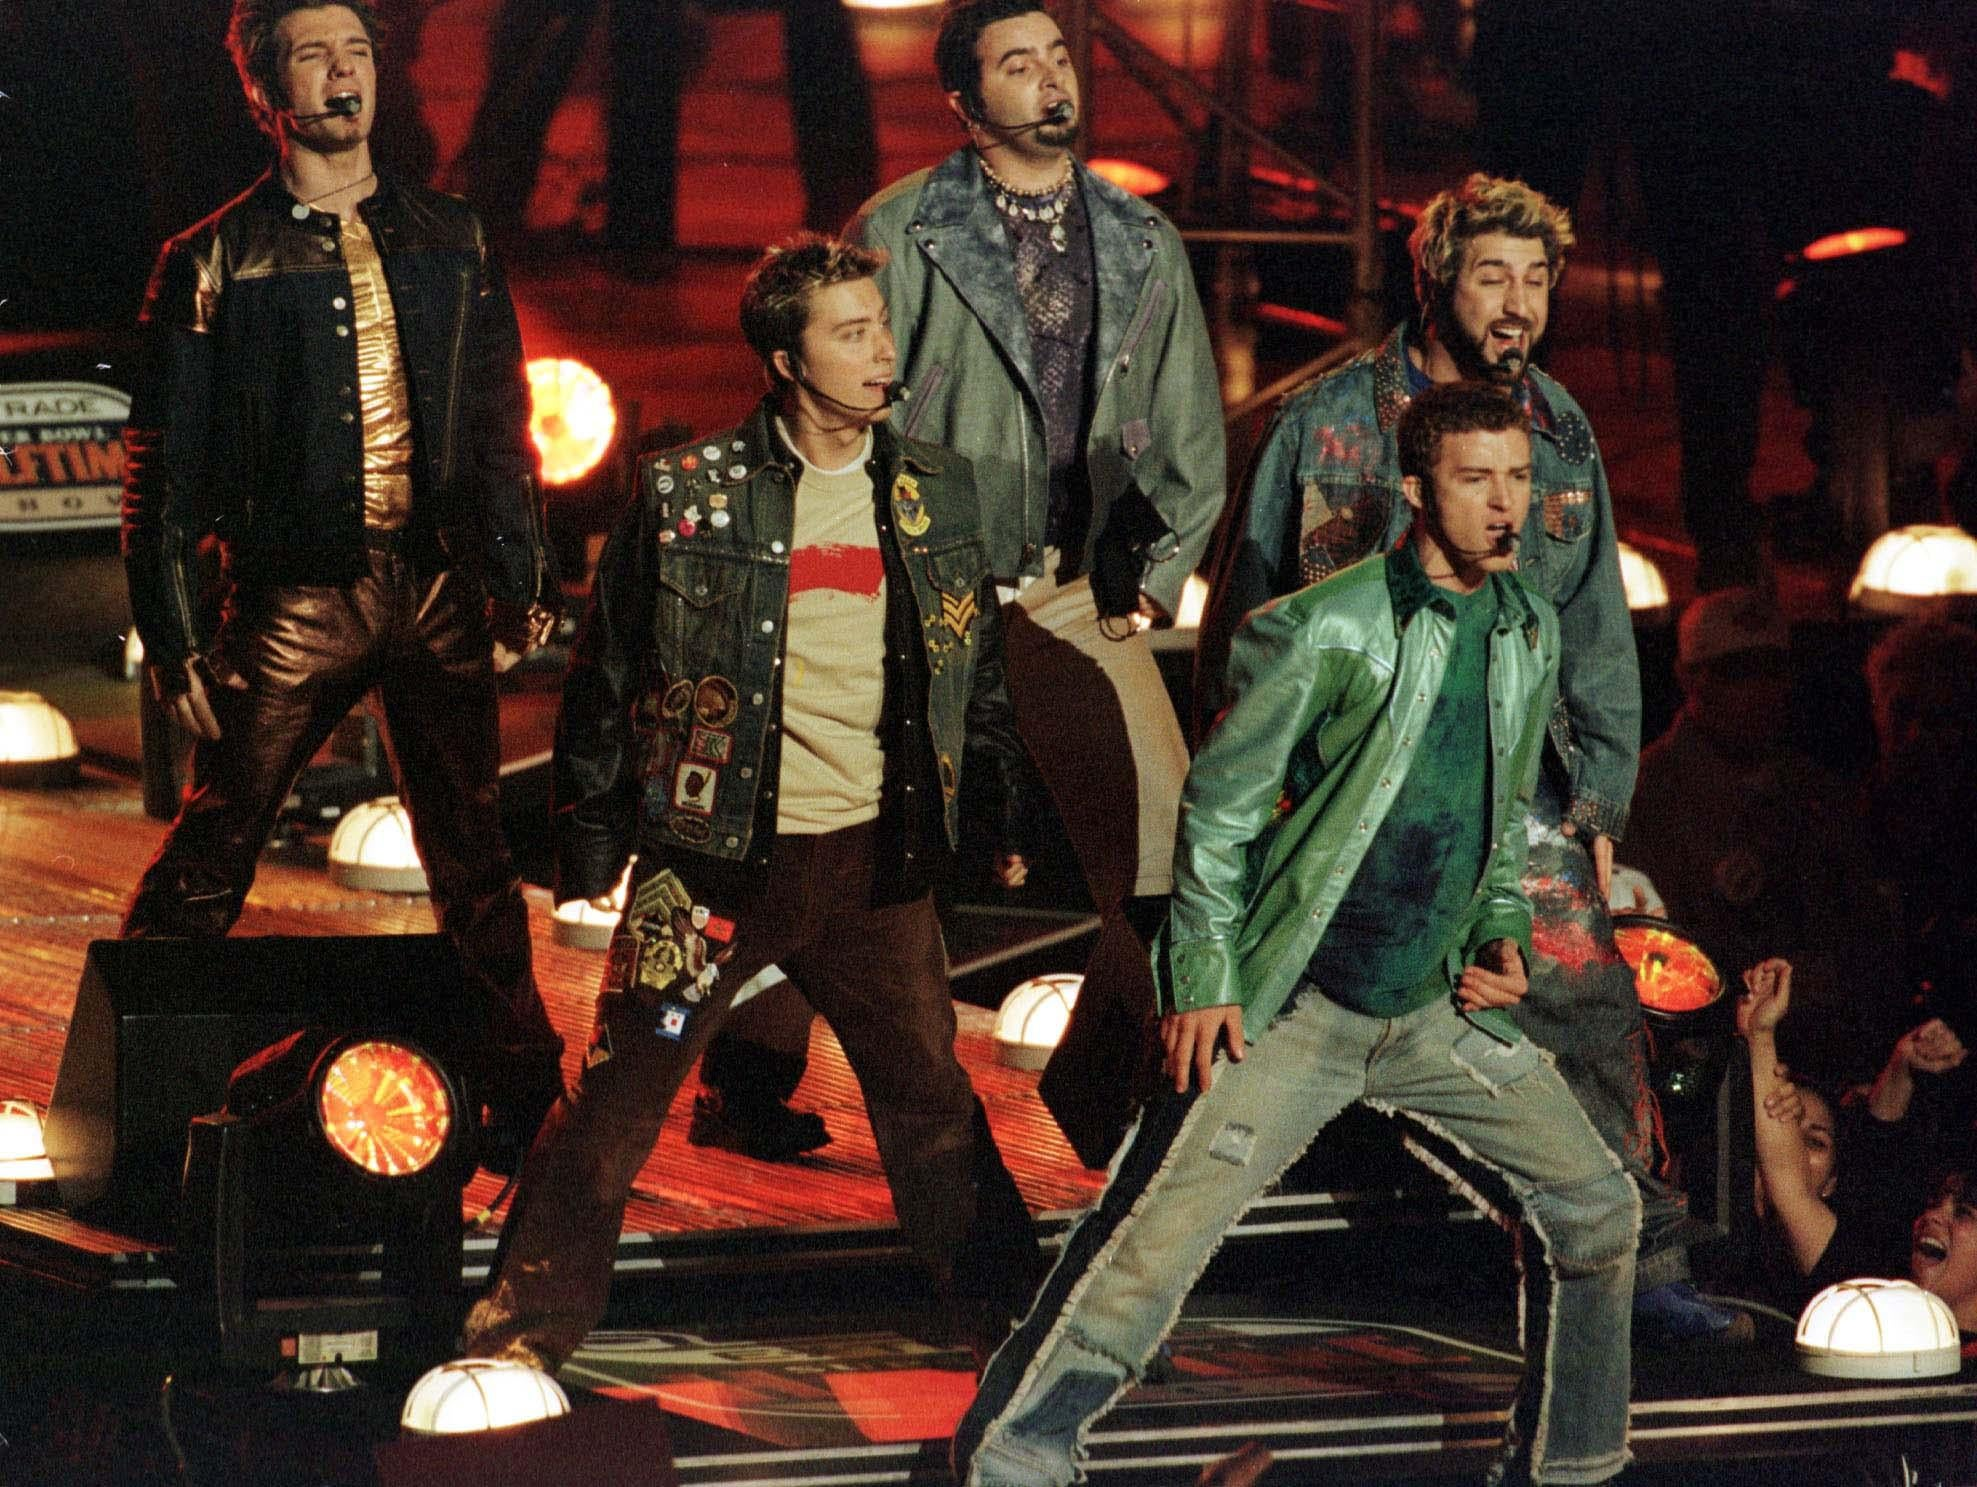 N Sync reunion to happen later this year   The Independent